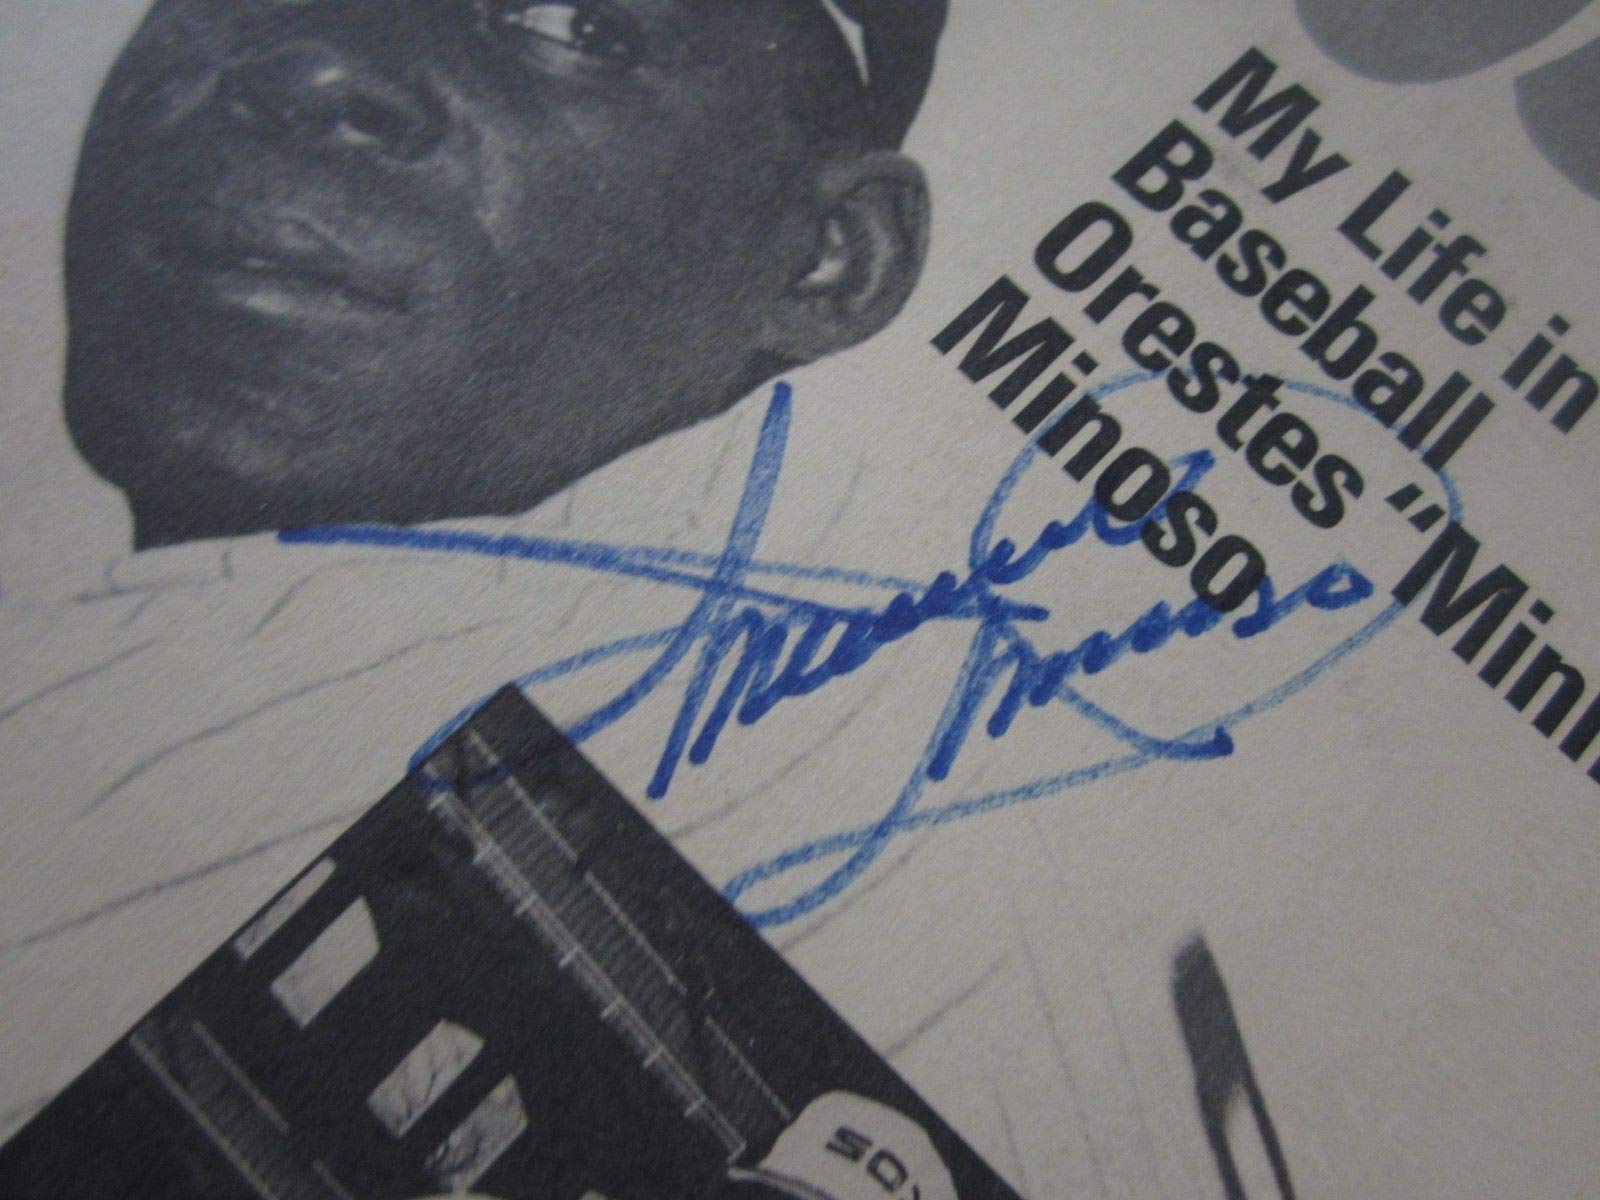 Minnie Minoso White Sox Autographed Signed Extra Innings Commemorative Booklet JSA Coa